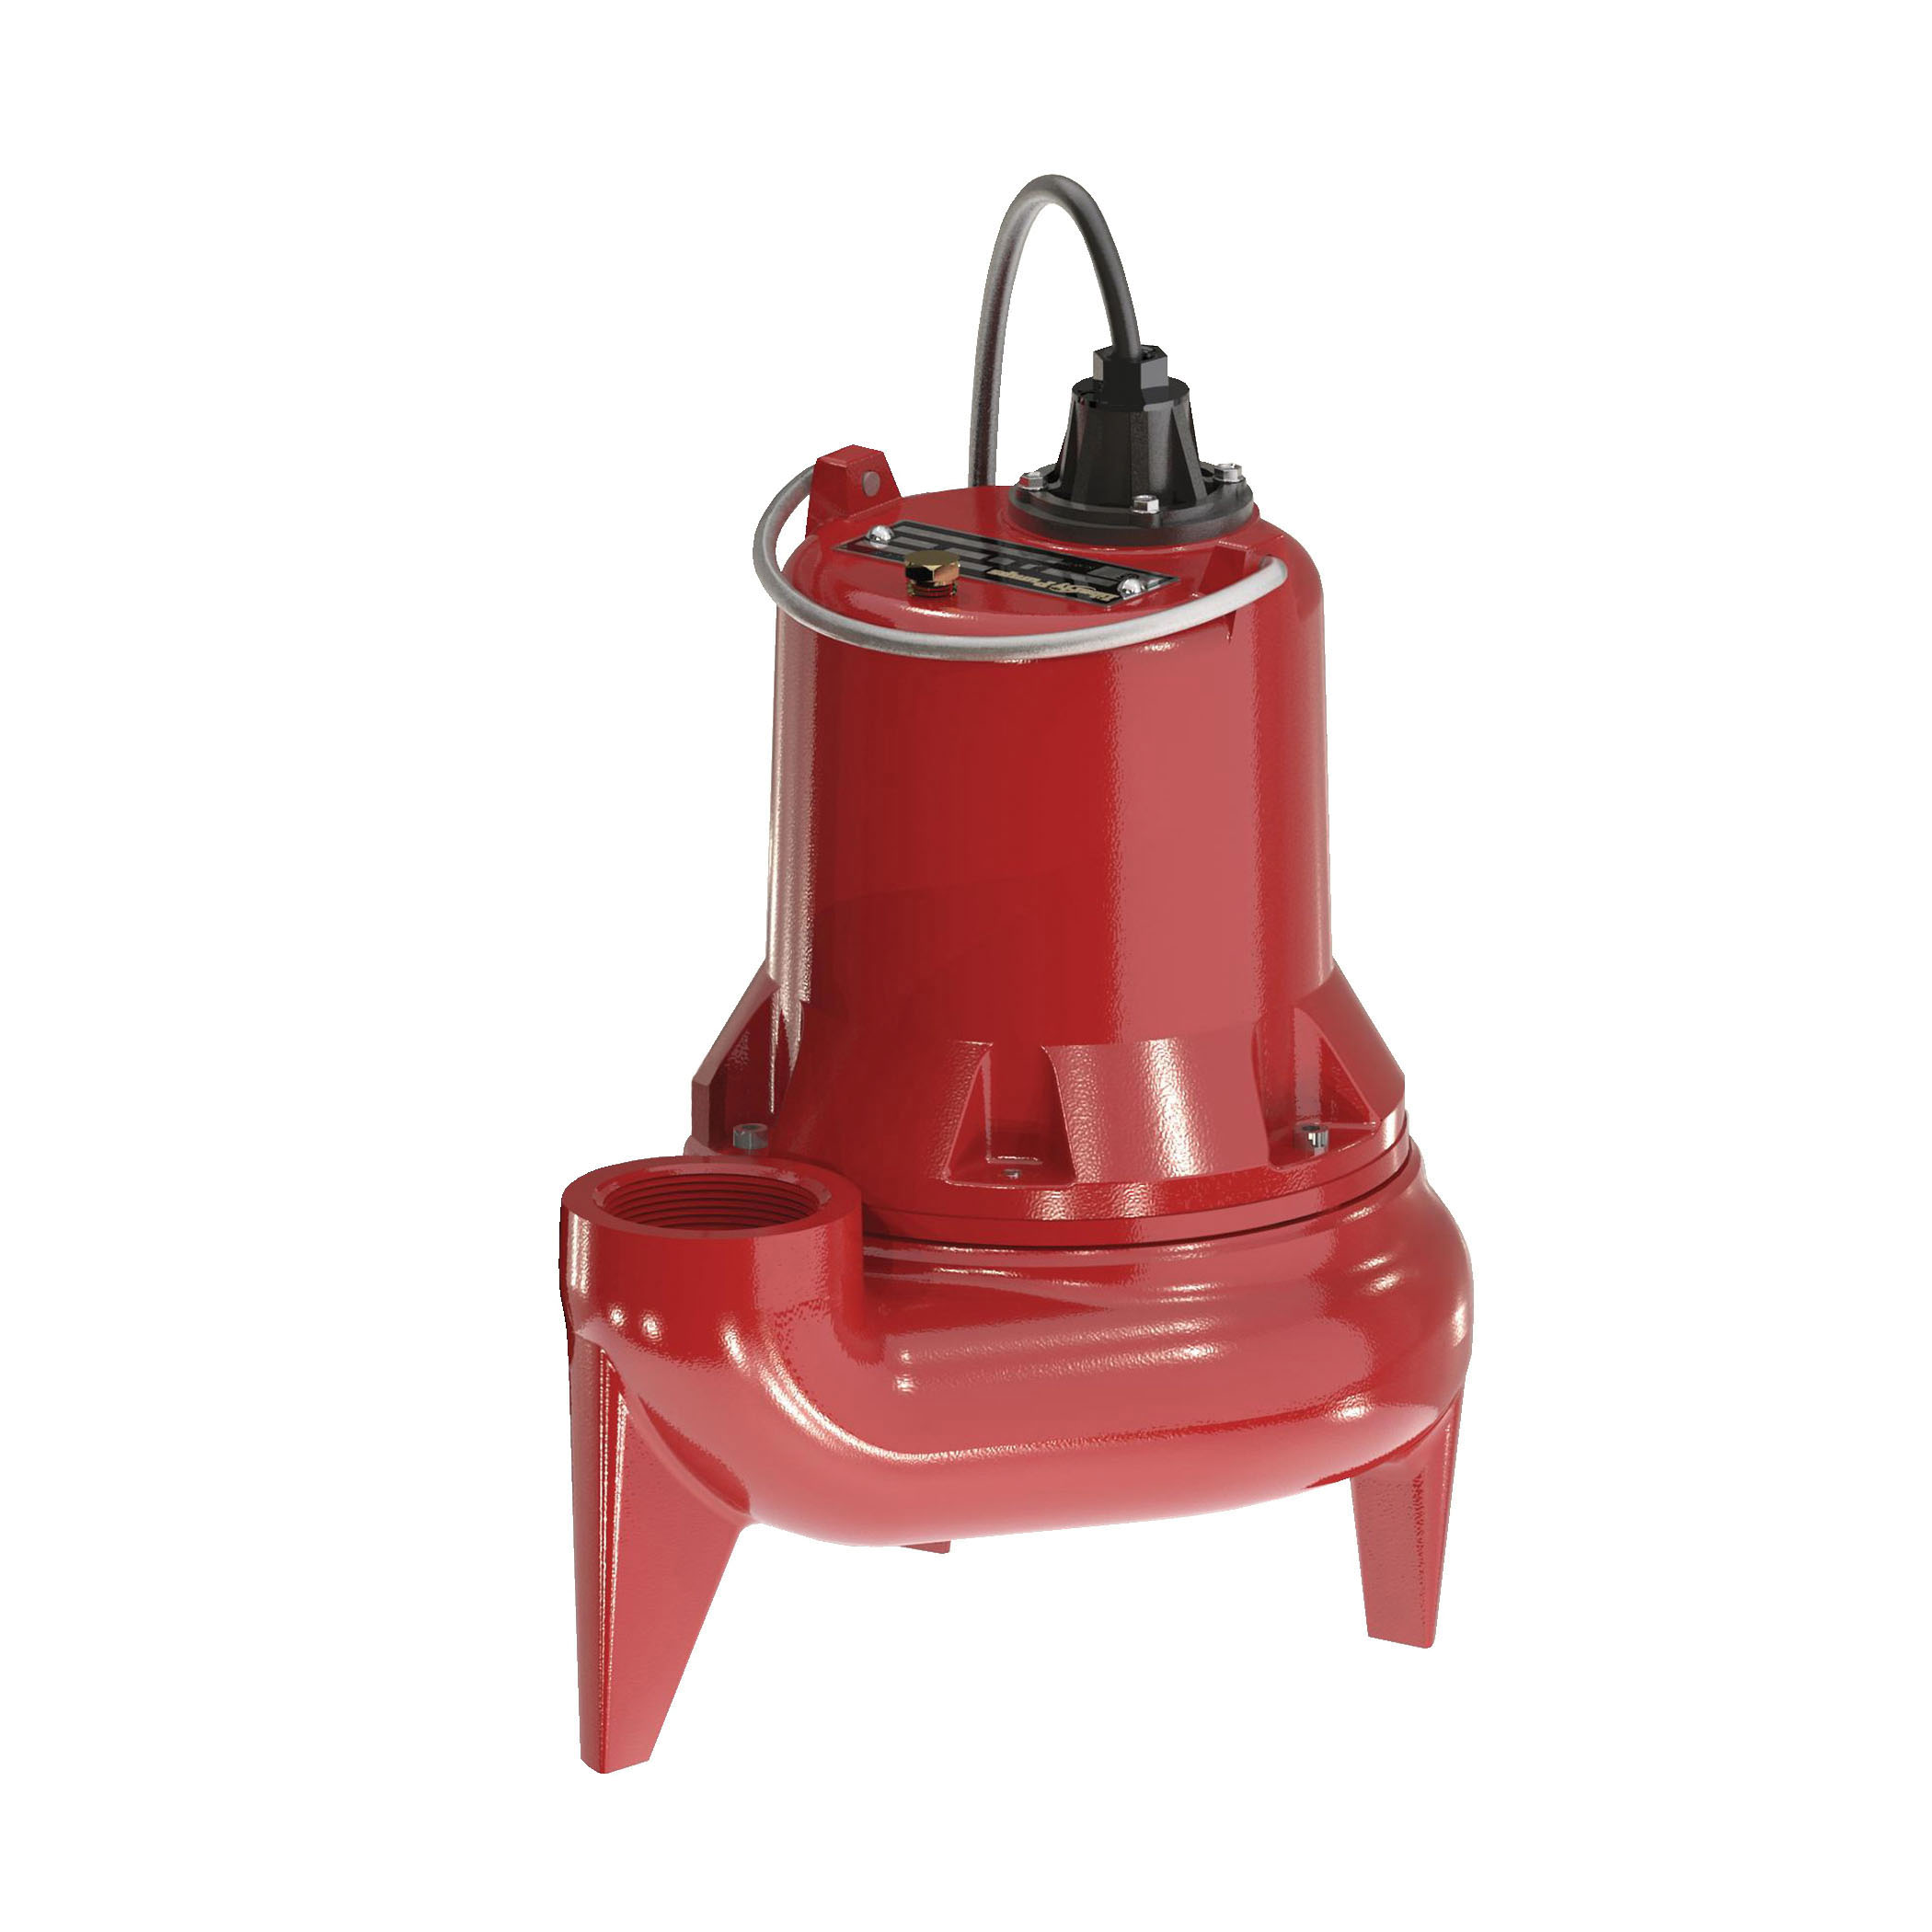 Liberty Pumps® LE51M-2 Submersible Sewage Pump, 1/2 hp, 115 VAC, 2 in FNPT Outlet, Cast Iron, 12 A Full Load/22.5 A Locked Rotor, 1 ph